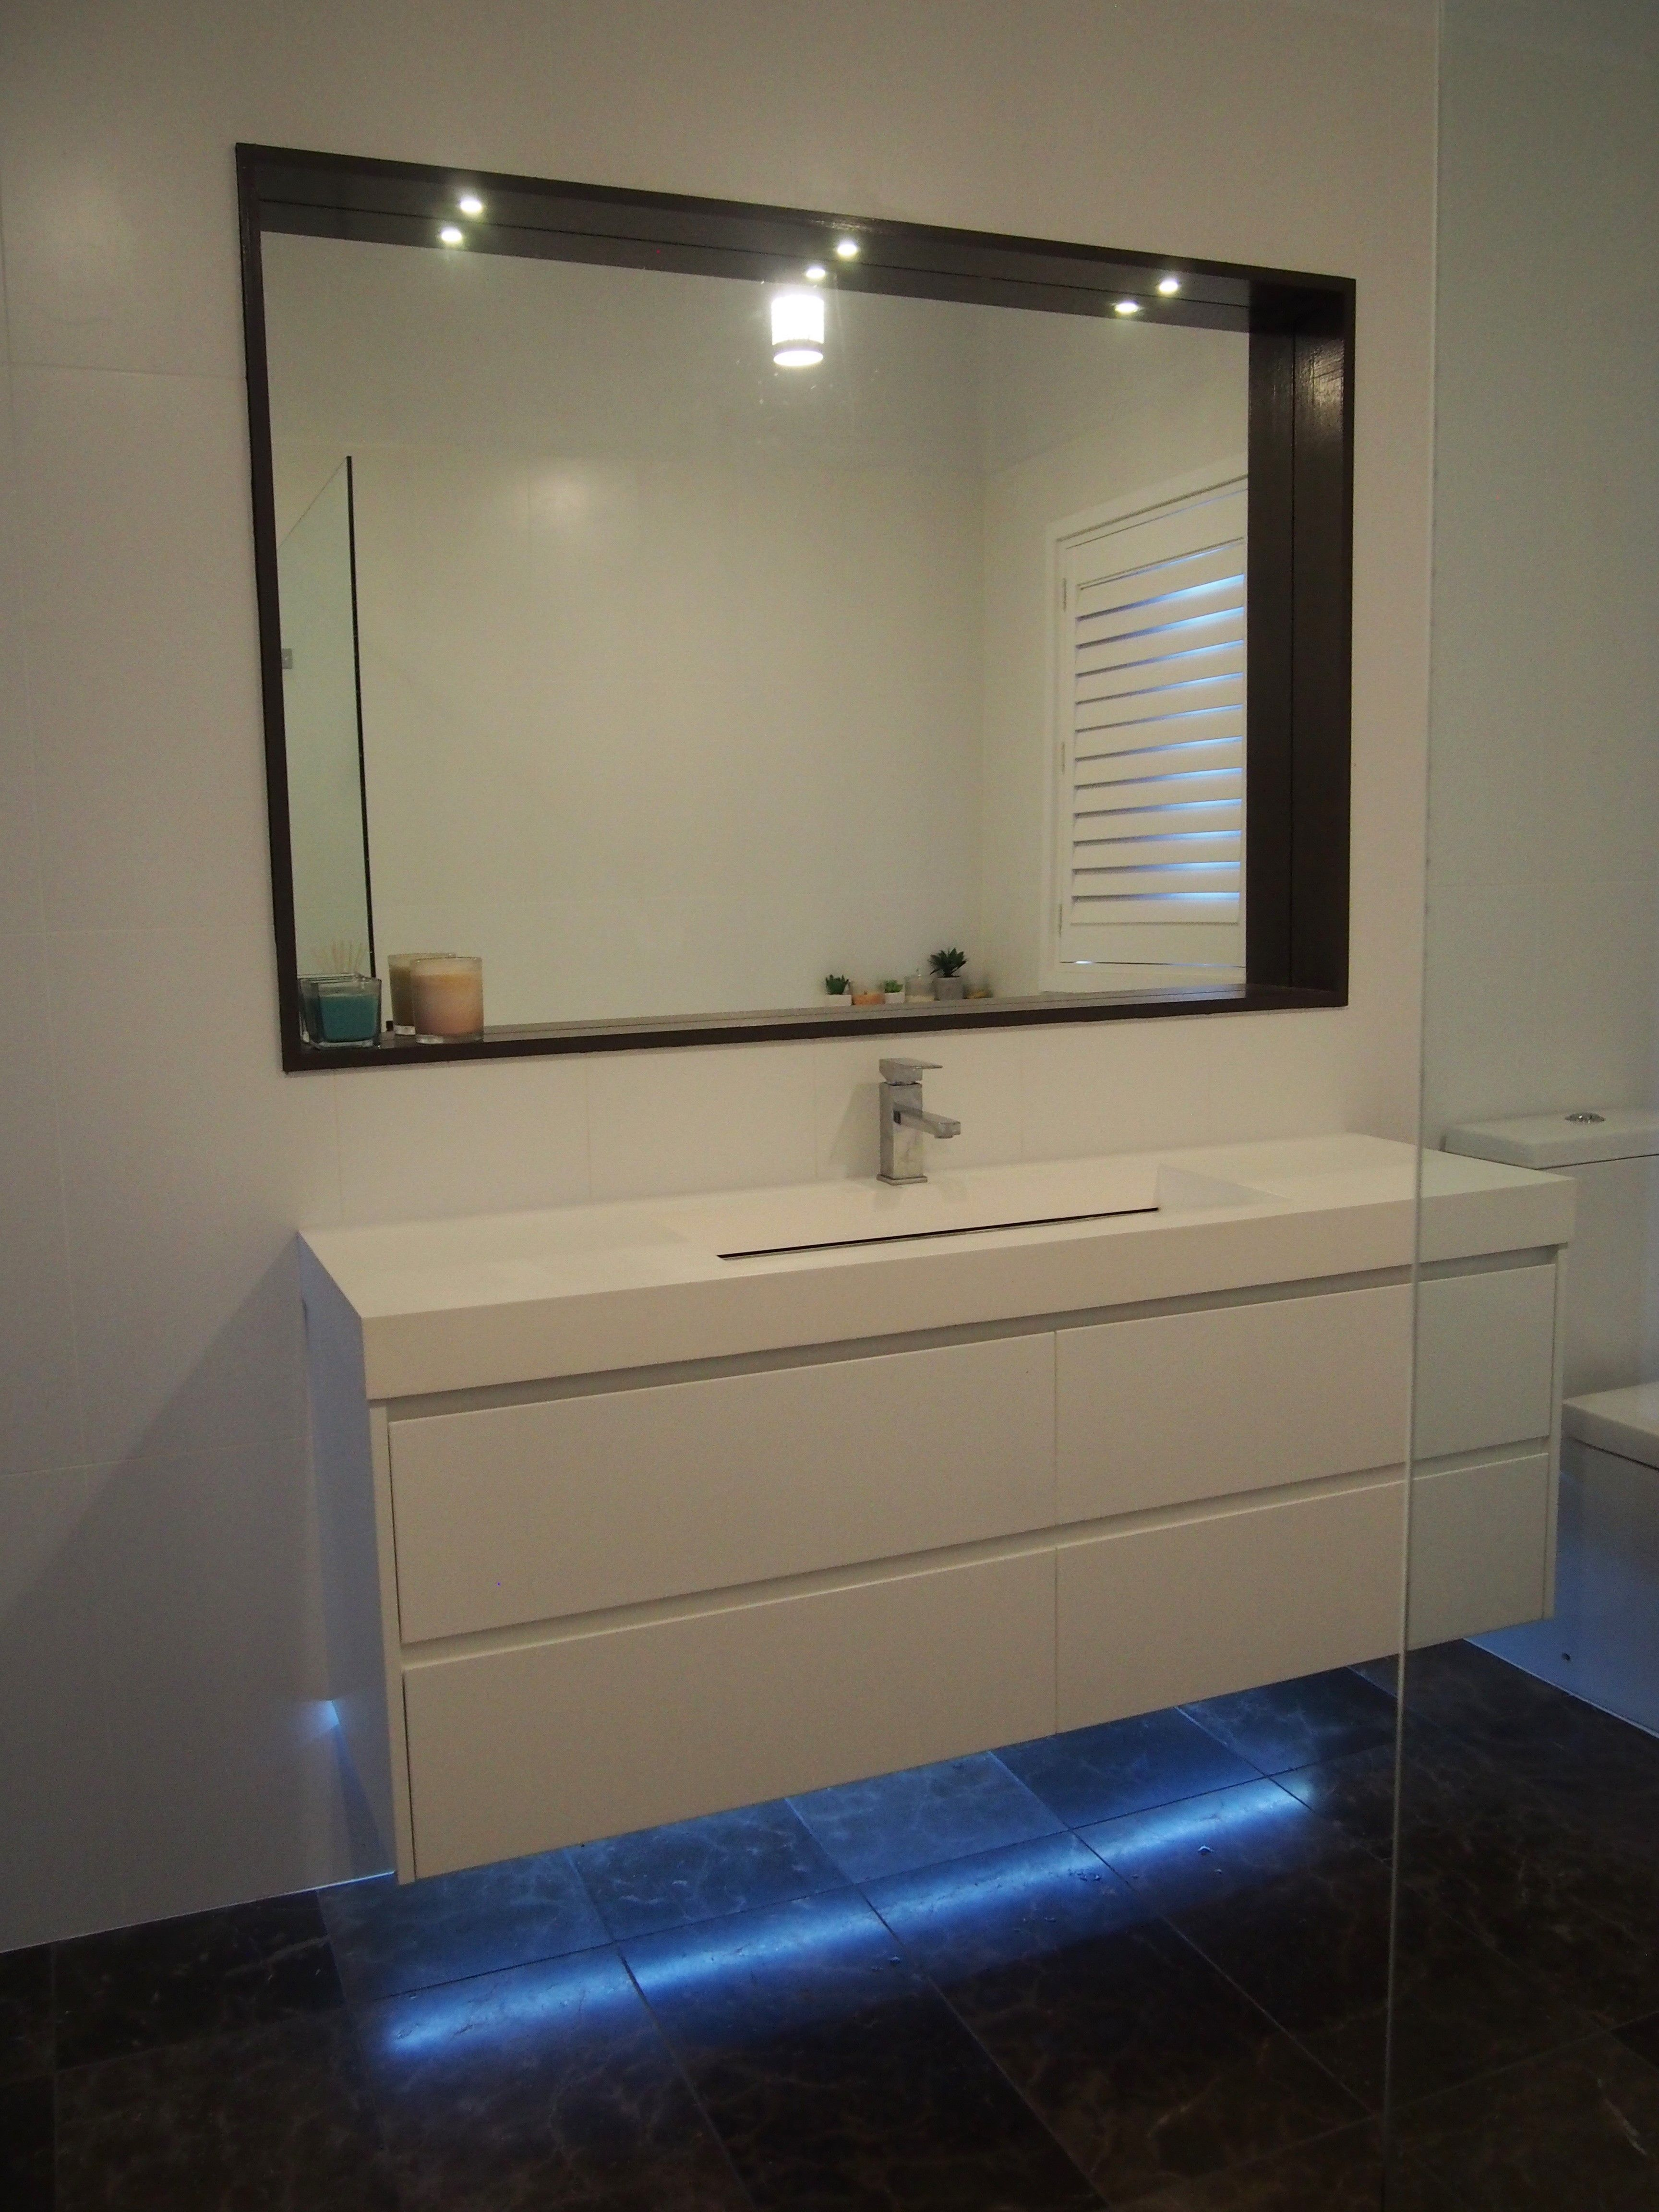 Vanity Mirror With Recessed Lights : Bathroom lighting LED, recessed mirror lights & under vanity LED strip lighting all in warm ...